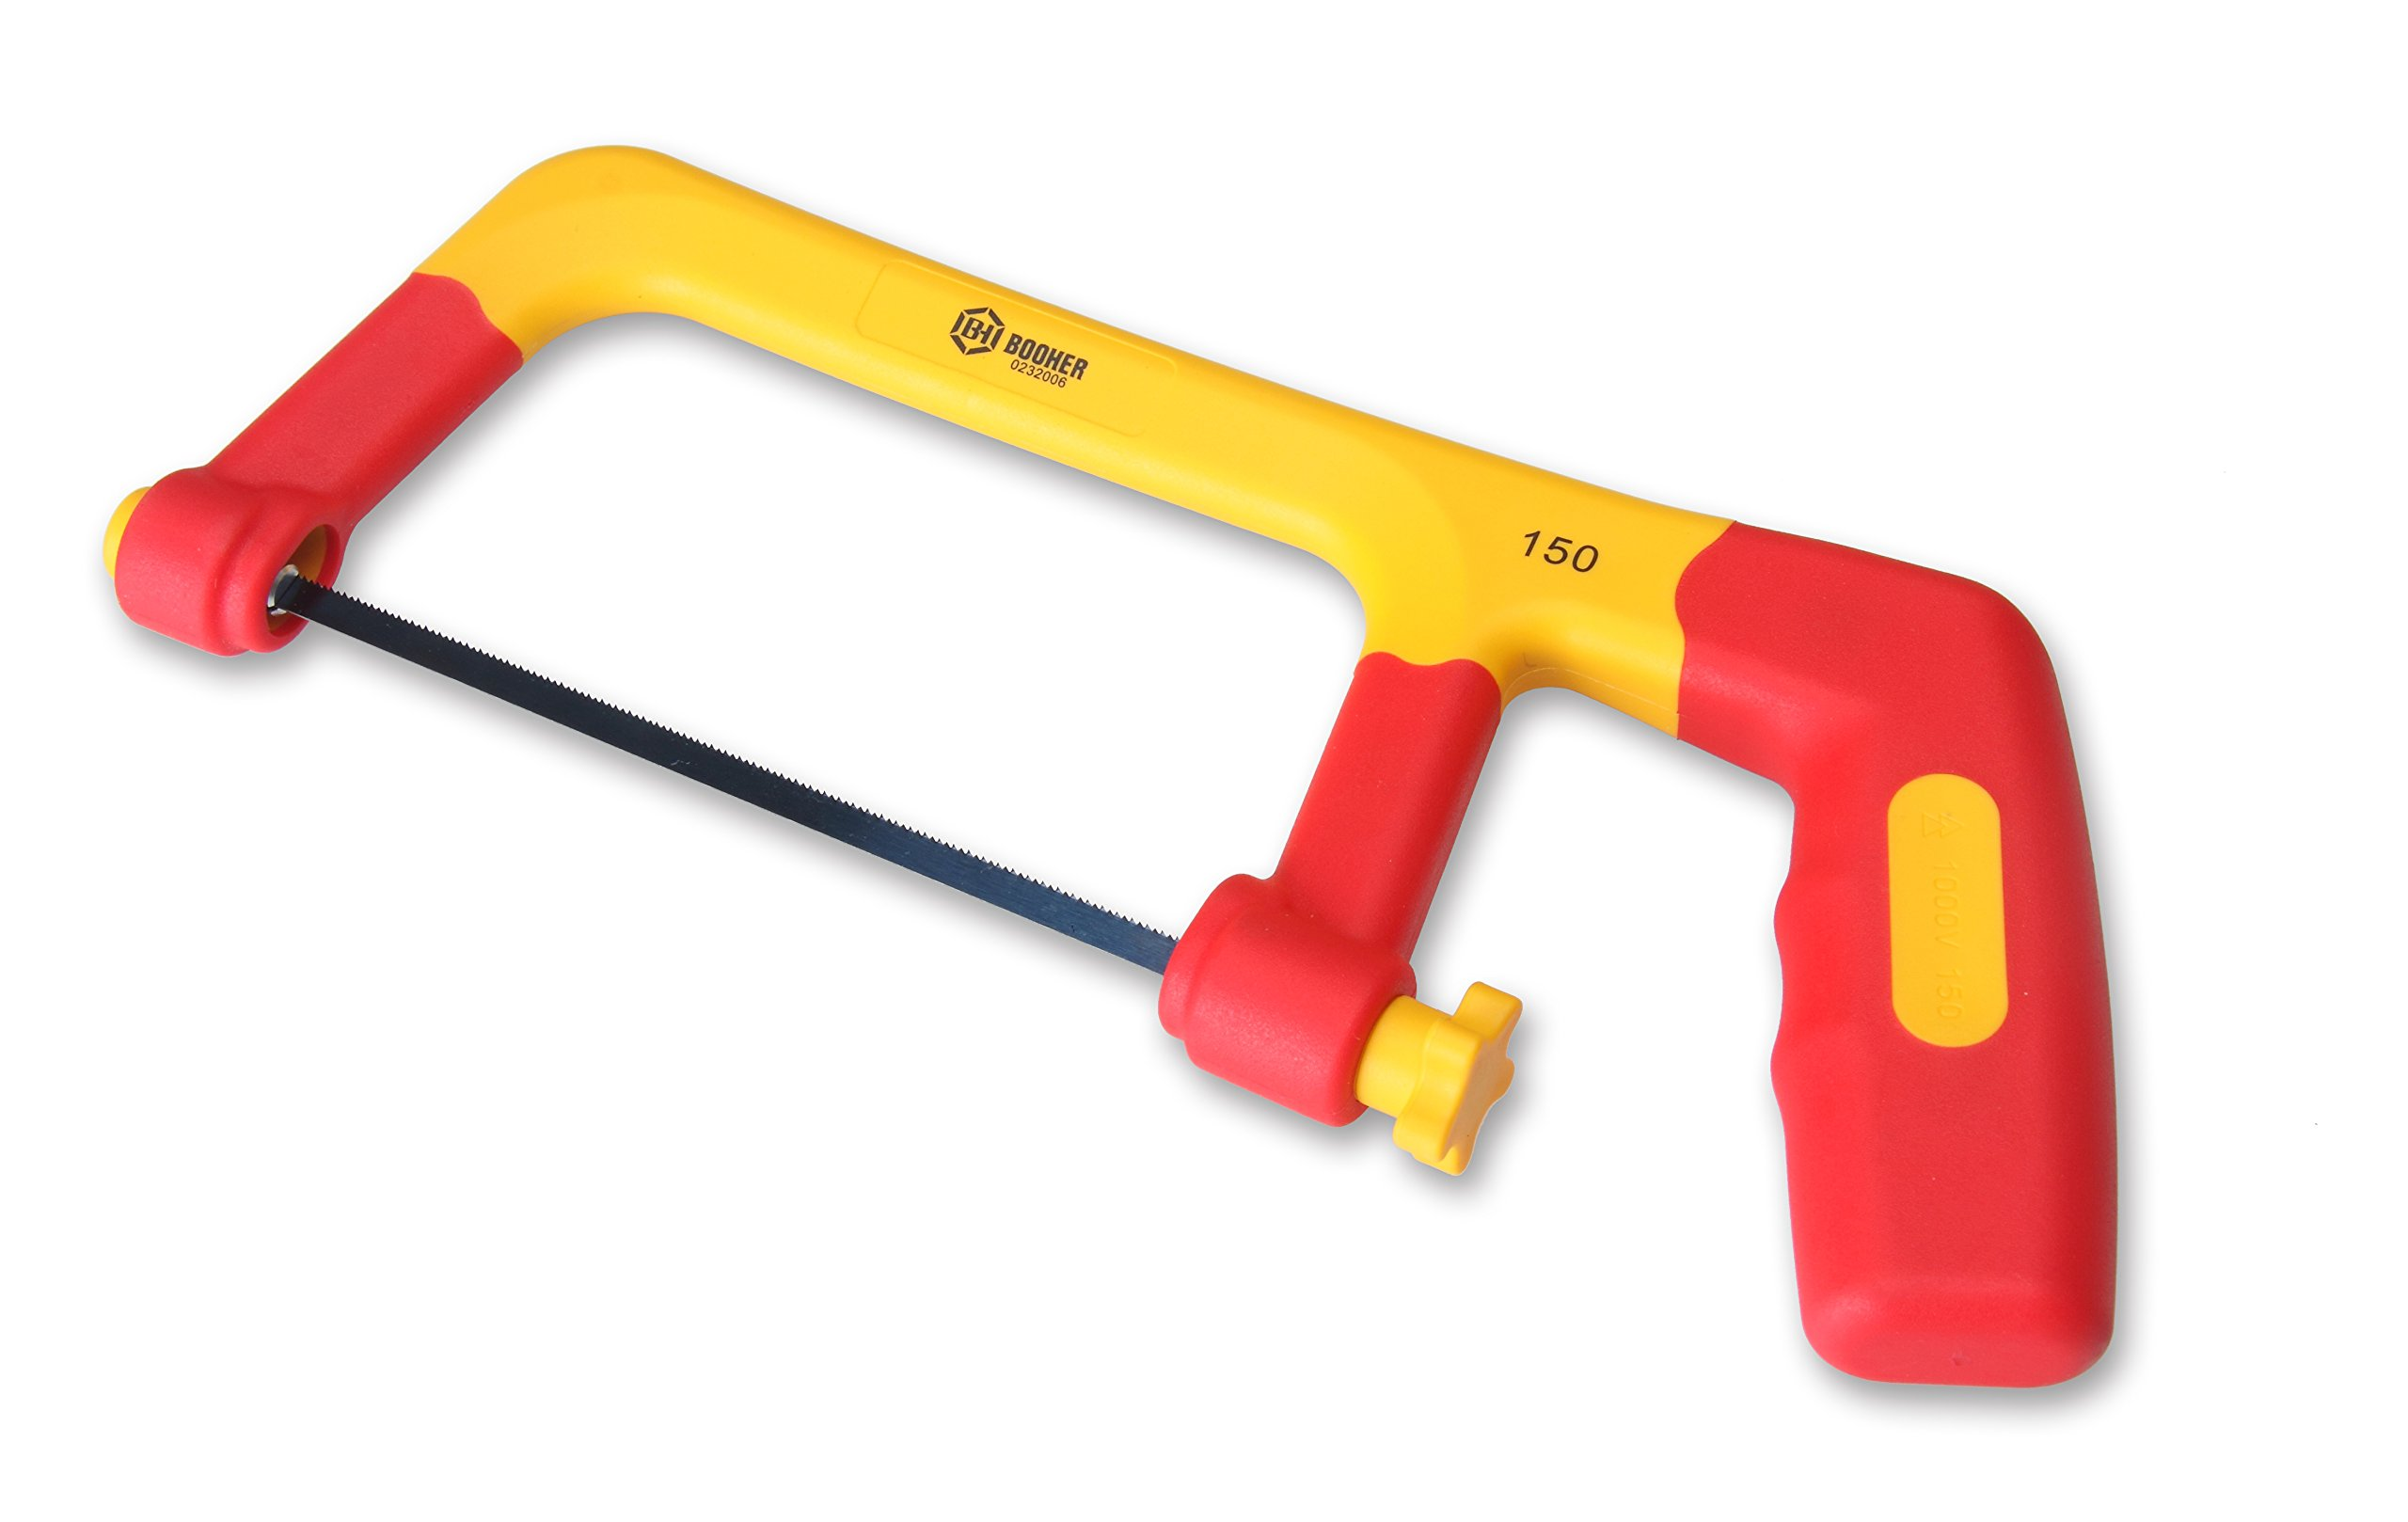 BOOHER 0232006 1000V Insulated Junior Hacksaw by BOOHER (Image #1)